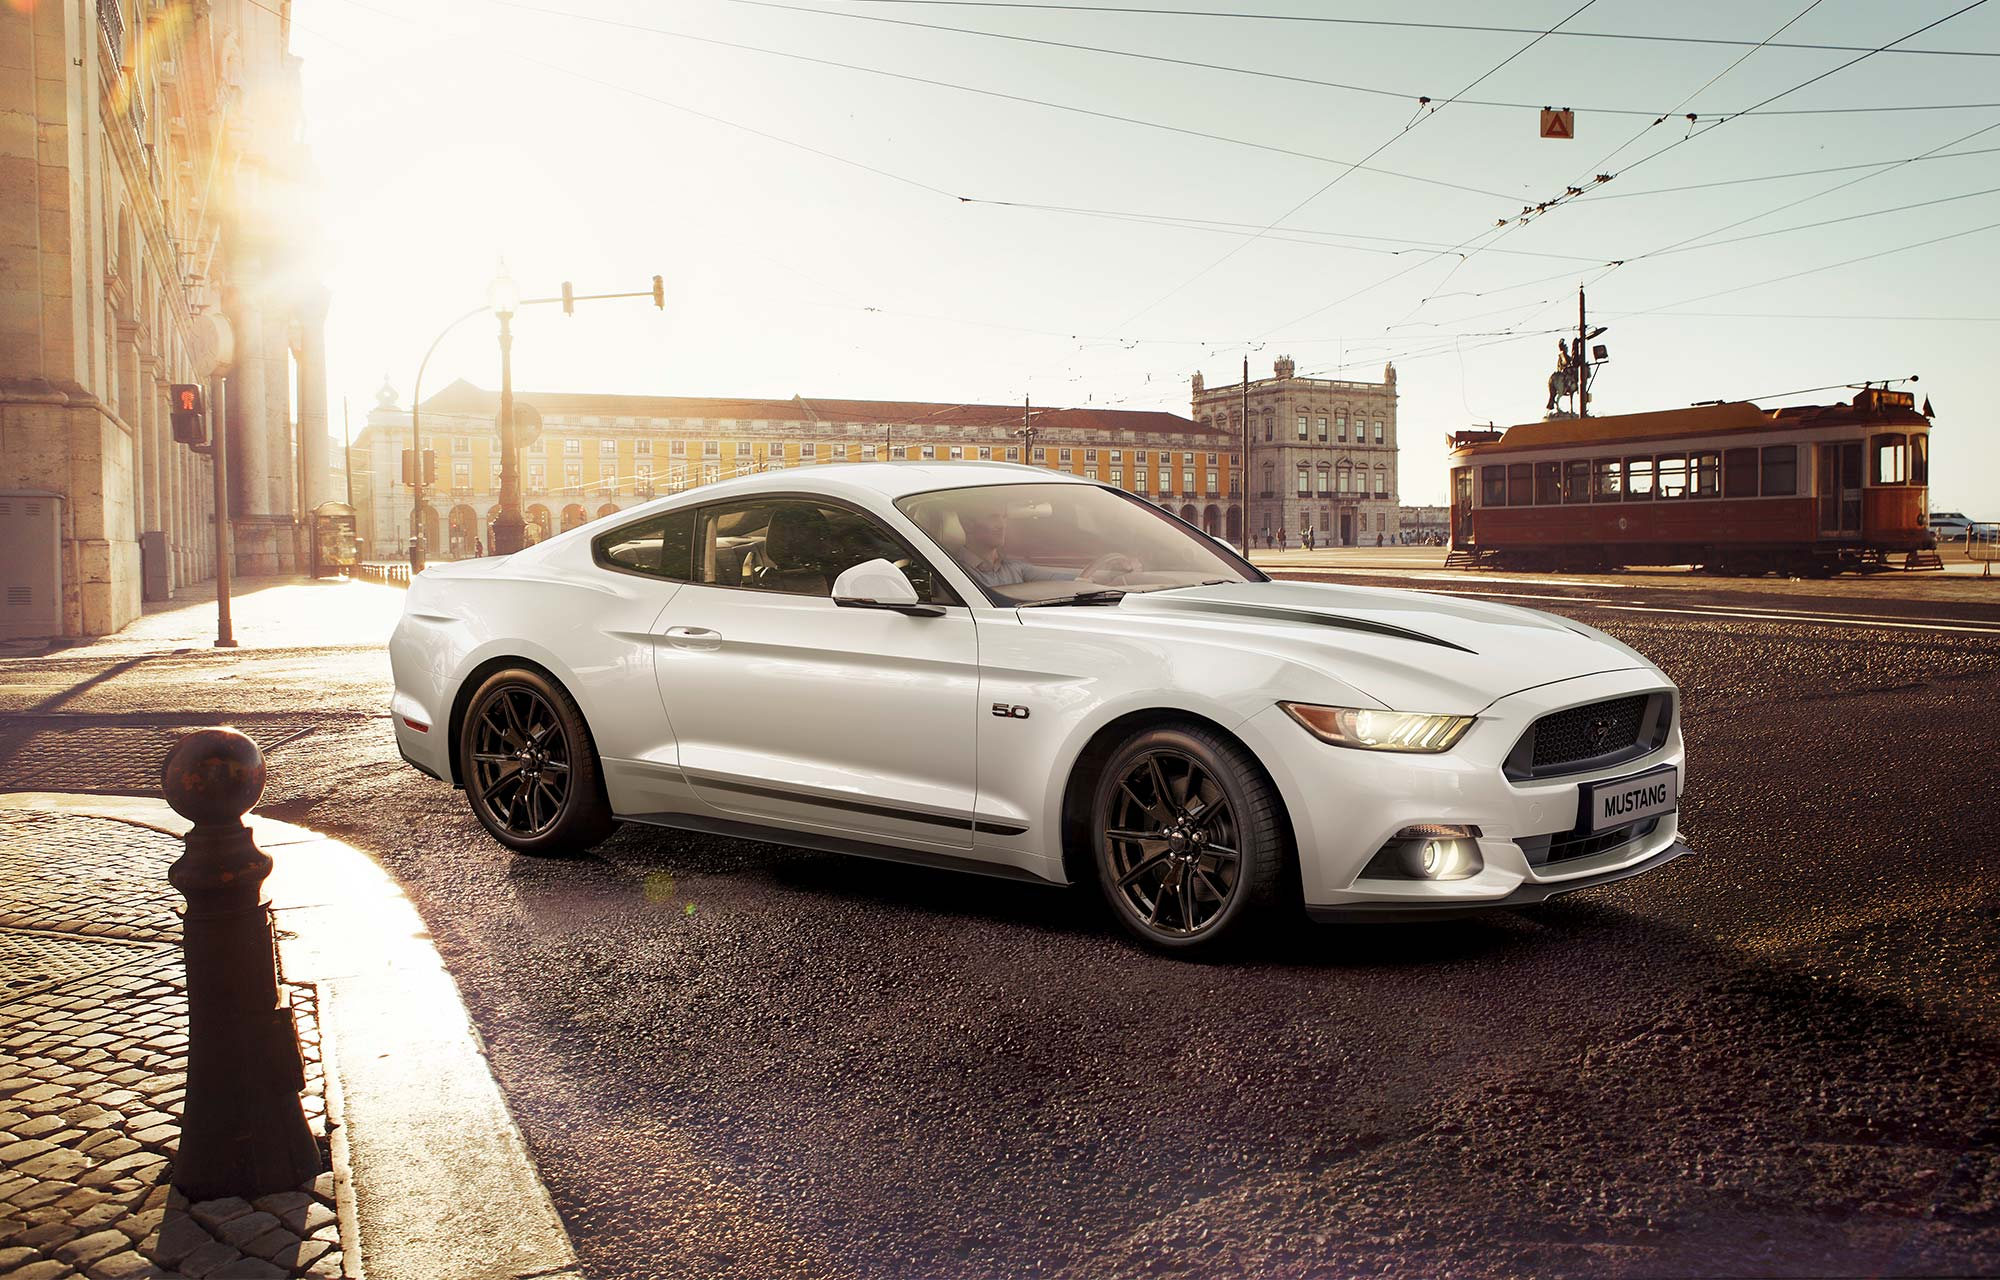 Mustang Black Shadow Edition